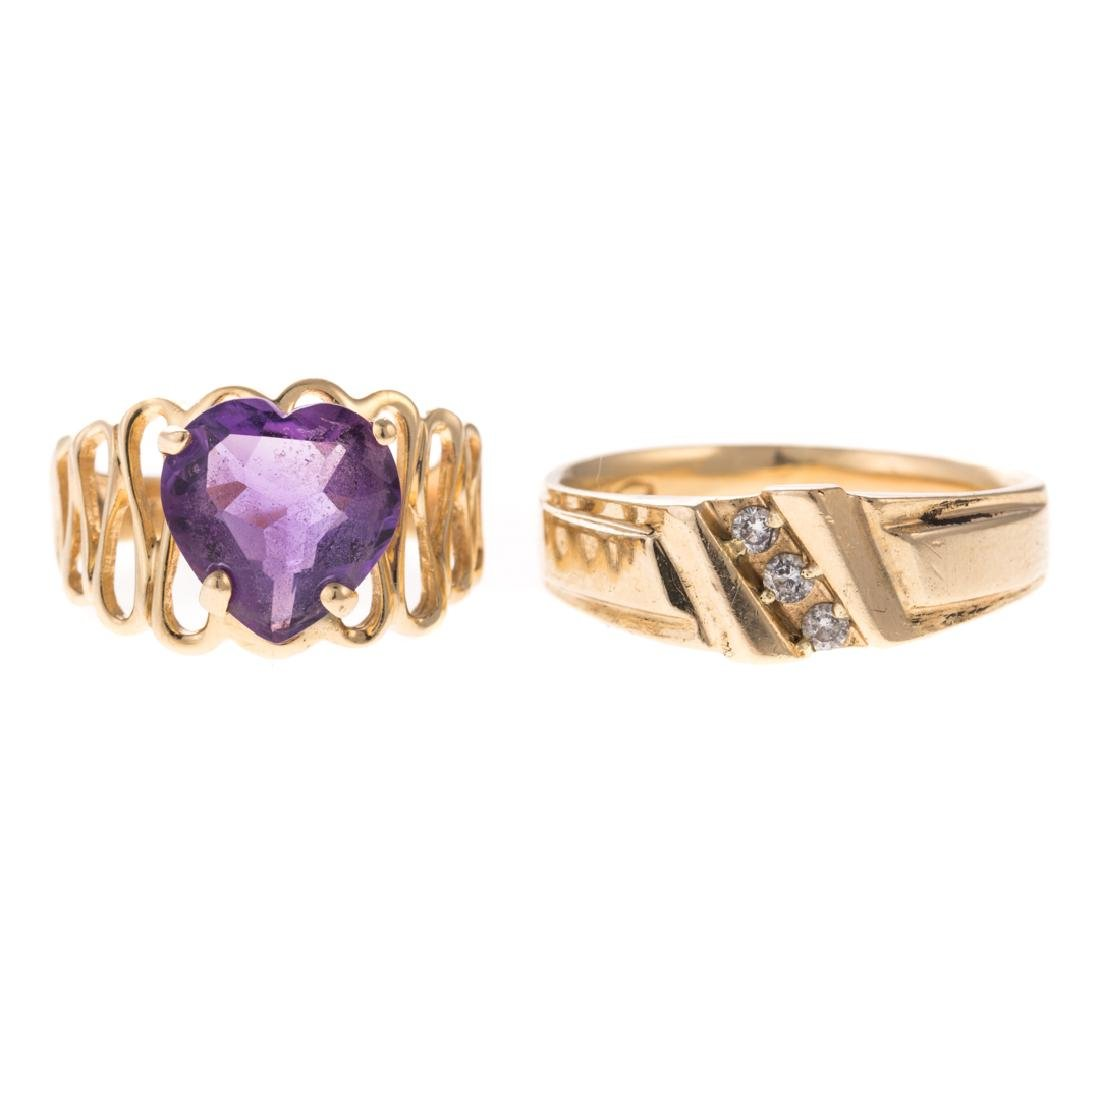 A Pair of Lady's Gemstone & Diamond Rings in Gold